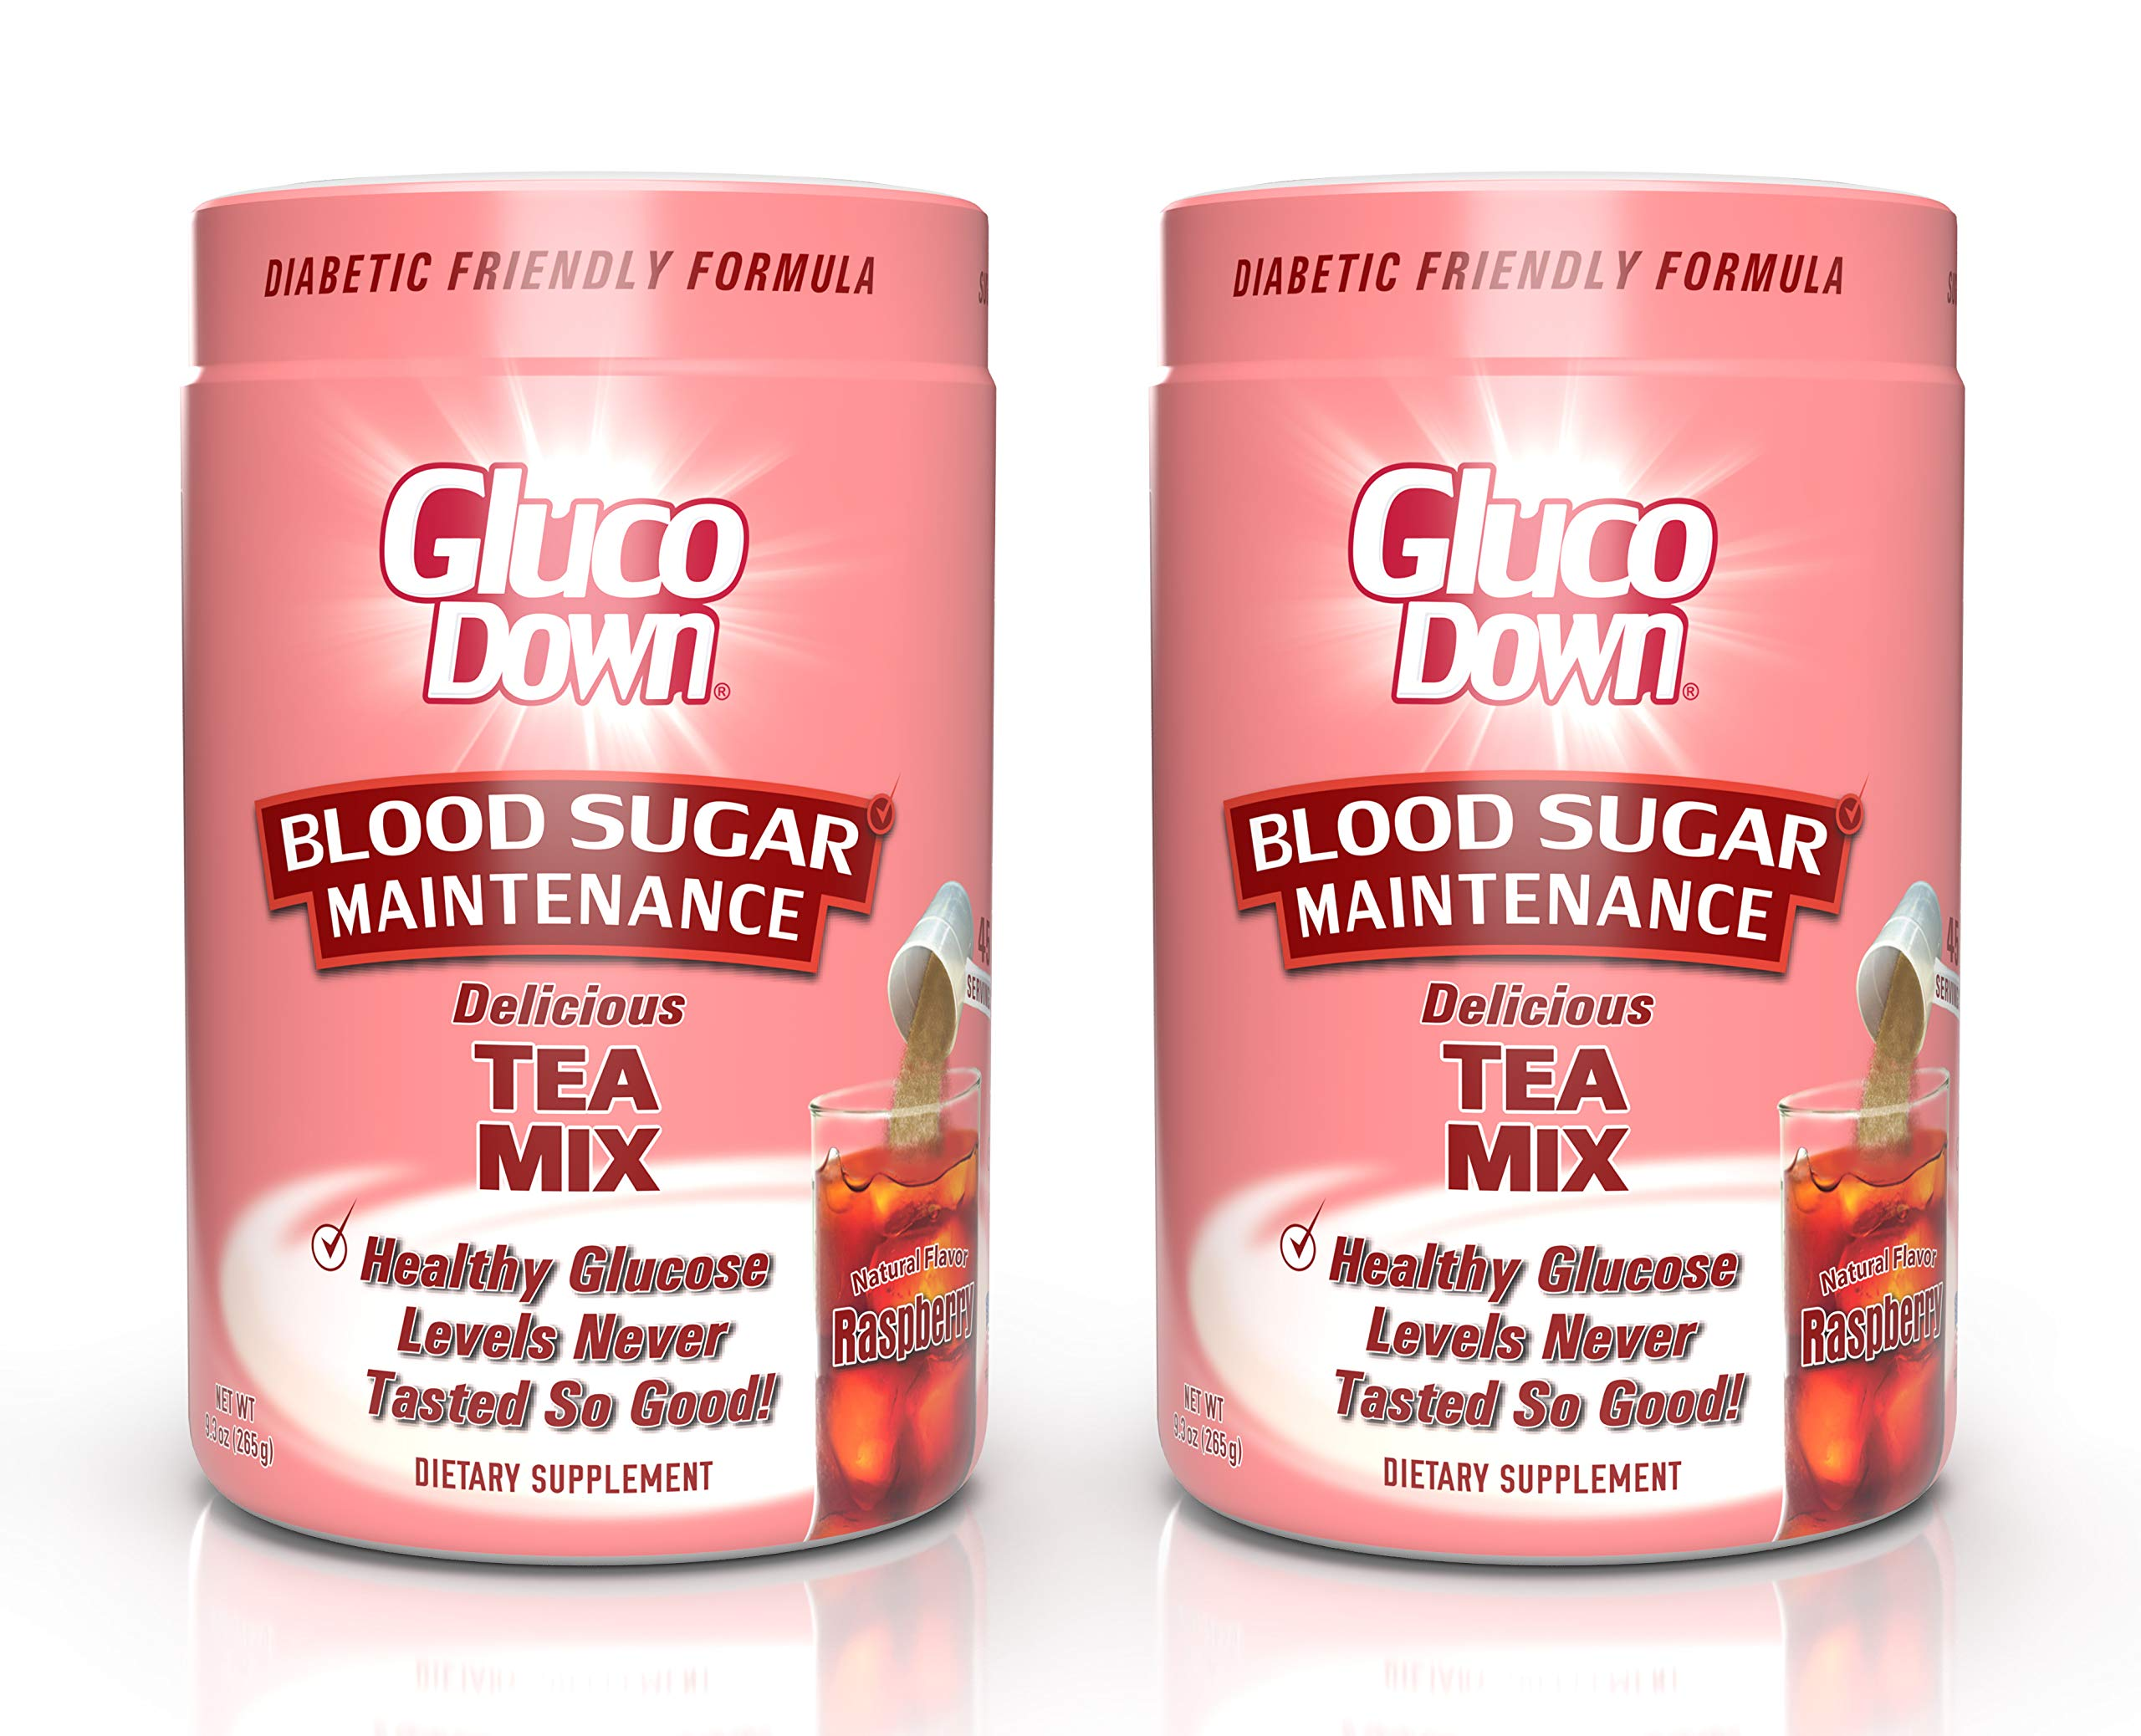 2-Pack, GlucoDown Diabetic Friendly Beverage, Maintain Healthy Blood Sugar, Delicious Raspberry Tea (Two 45-Serving Containers)